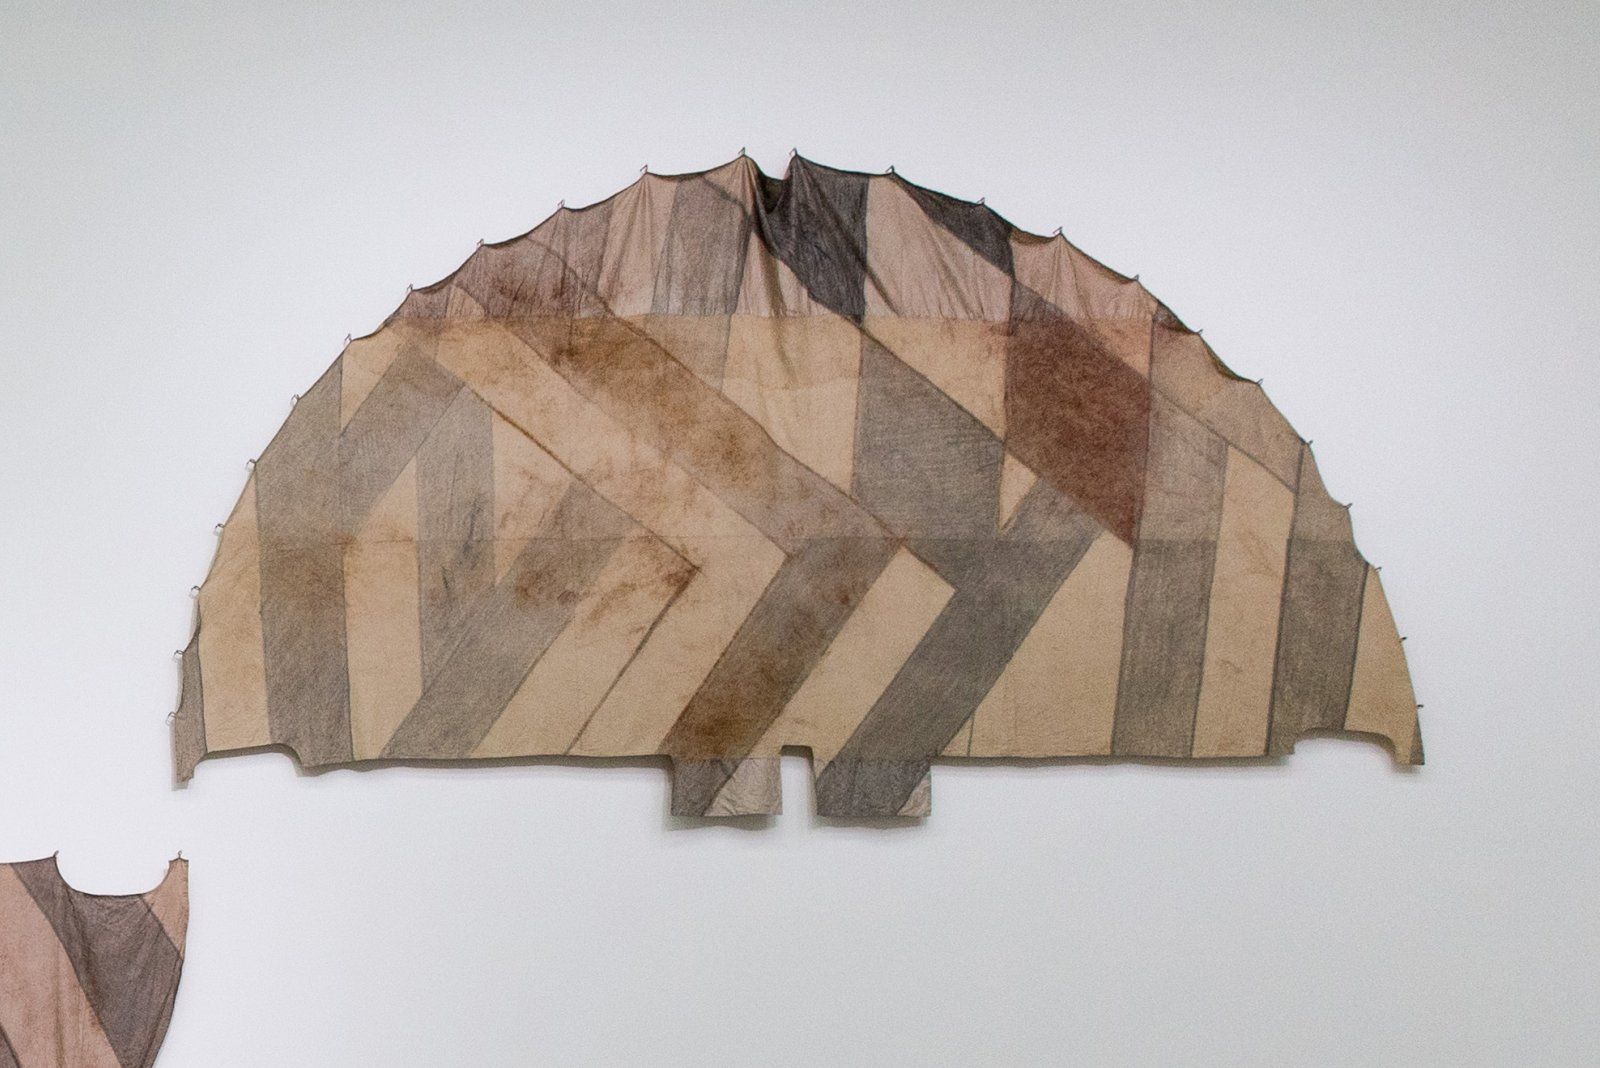 Duane Linklater, Tipi cover for unknown future horizon / Indian lemonade diamond for Mina, 2018, digital print on hand-dyed linen, cedar, sumac, charcoal, nails, 113 x 213 in. (287 x 541 cm). Installation view, Post-Nature—A Museum as an Ecosystem, Taipei Biennial 2018, Taipei Fine Arts Museum, Taiwan, 2018